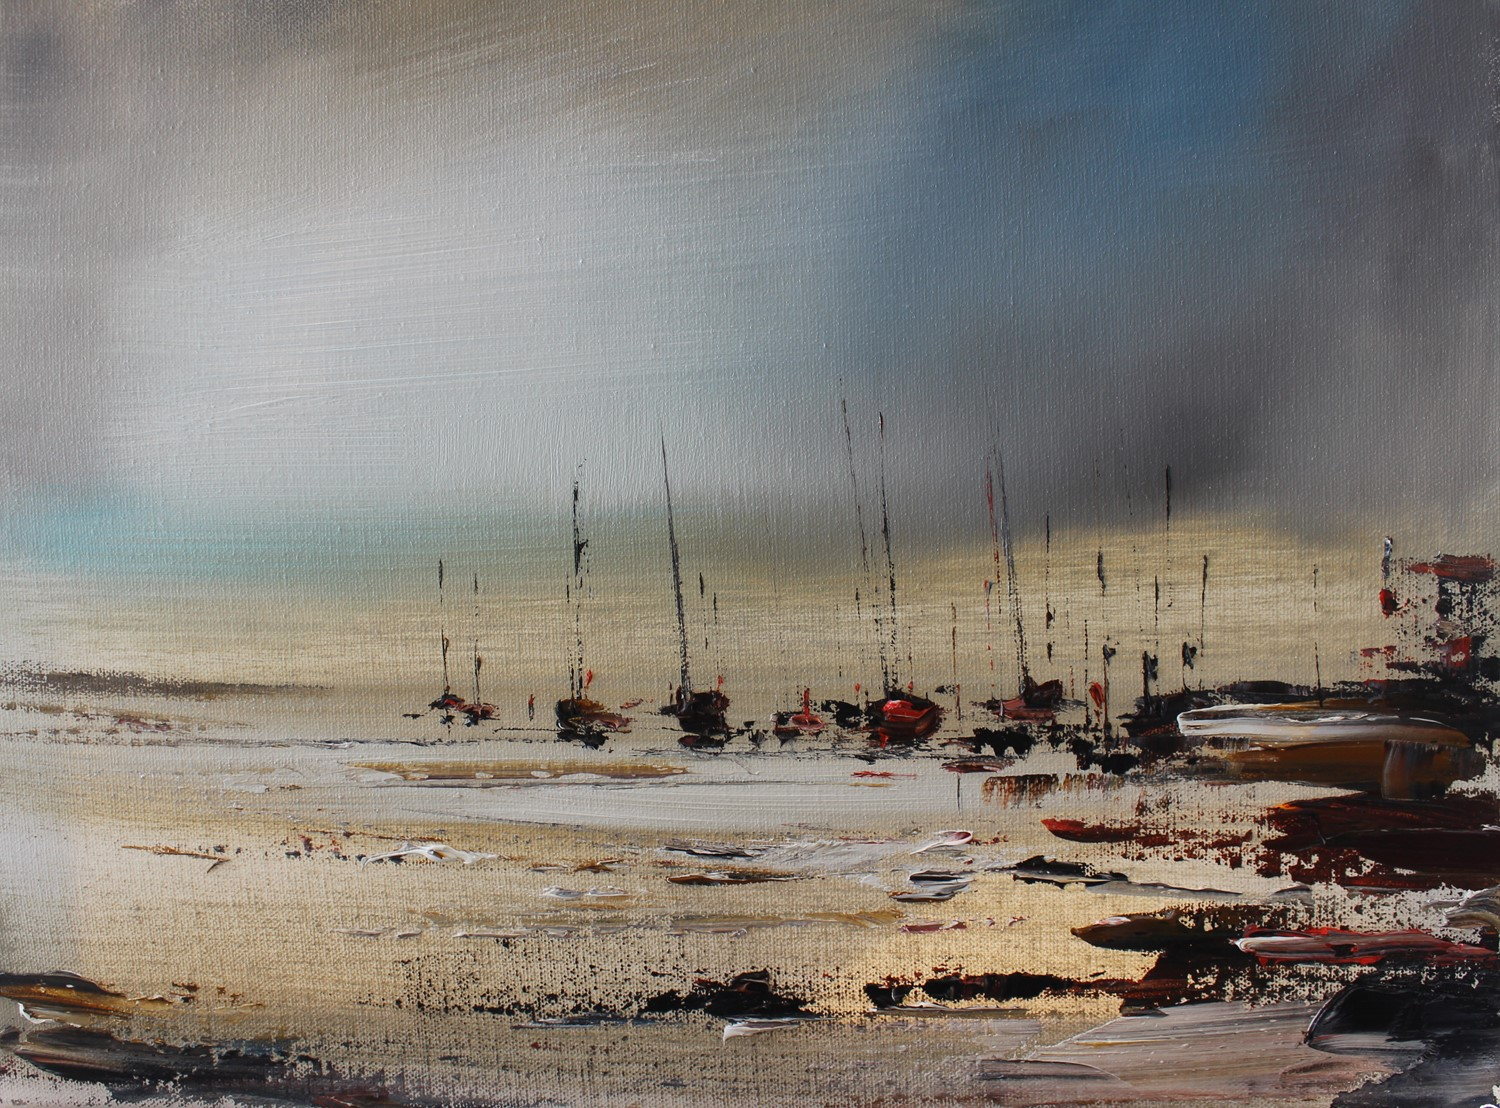 'Across the Silvery Water ' by artist Rosanne Barr